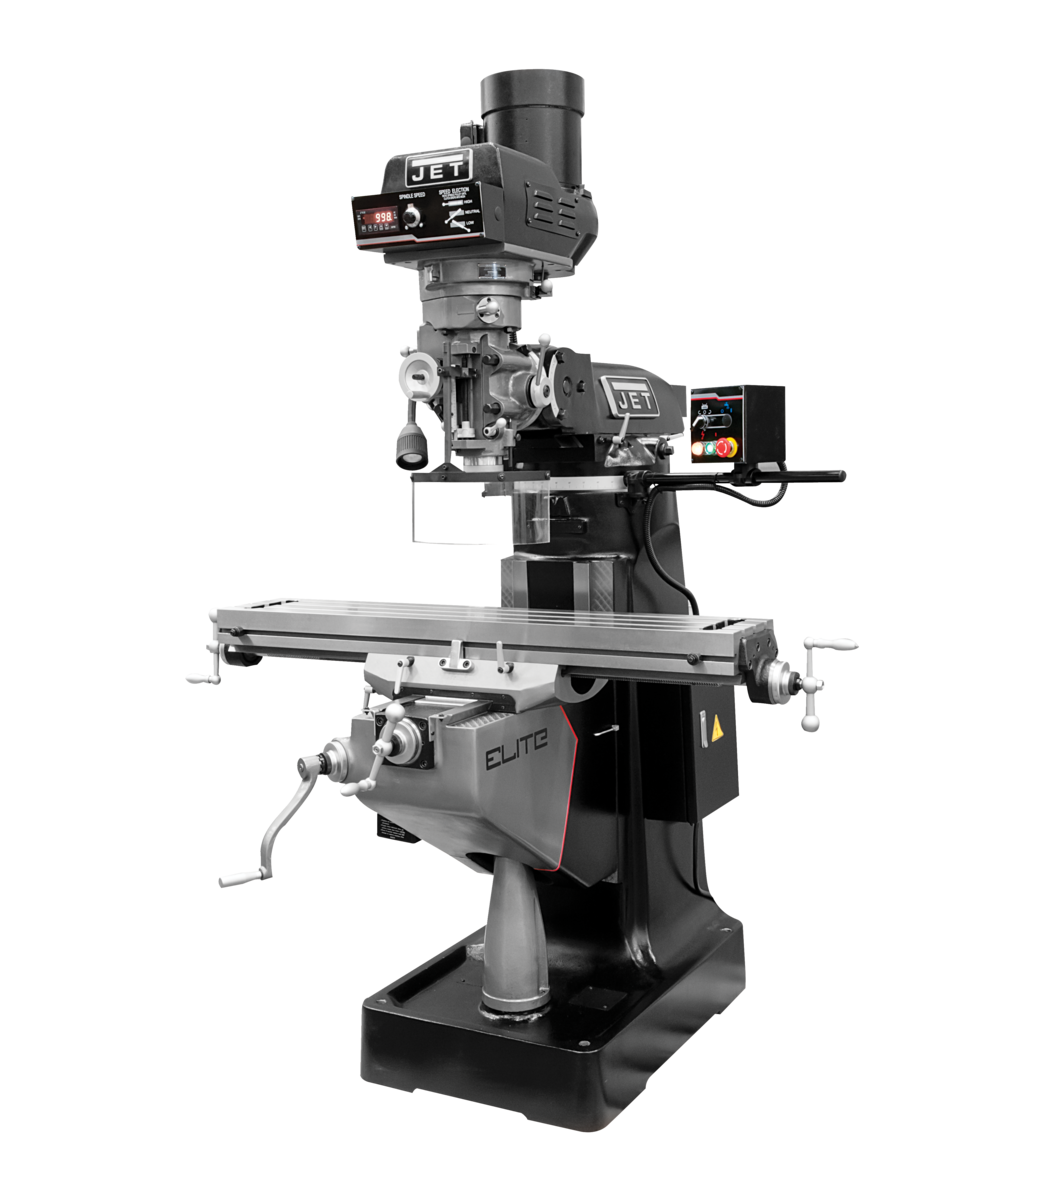 EVS-949 Mill with 2-Axis ACU-RITE 303  DRO and X-Axis JET Powerfeed